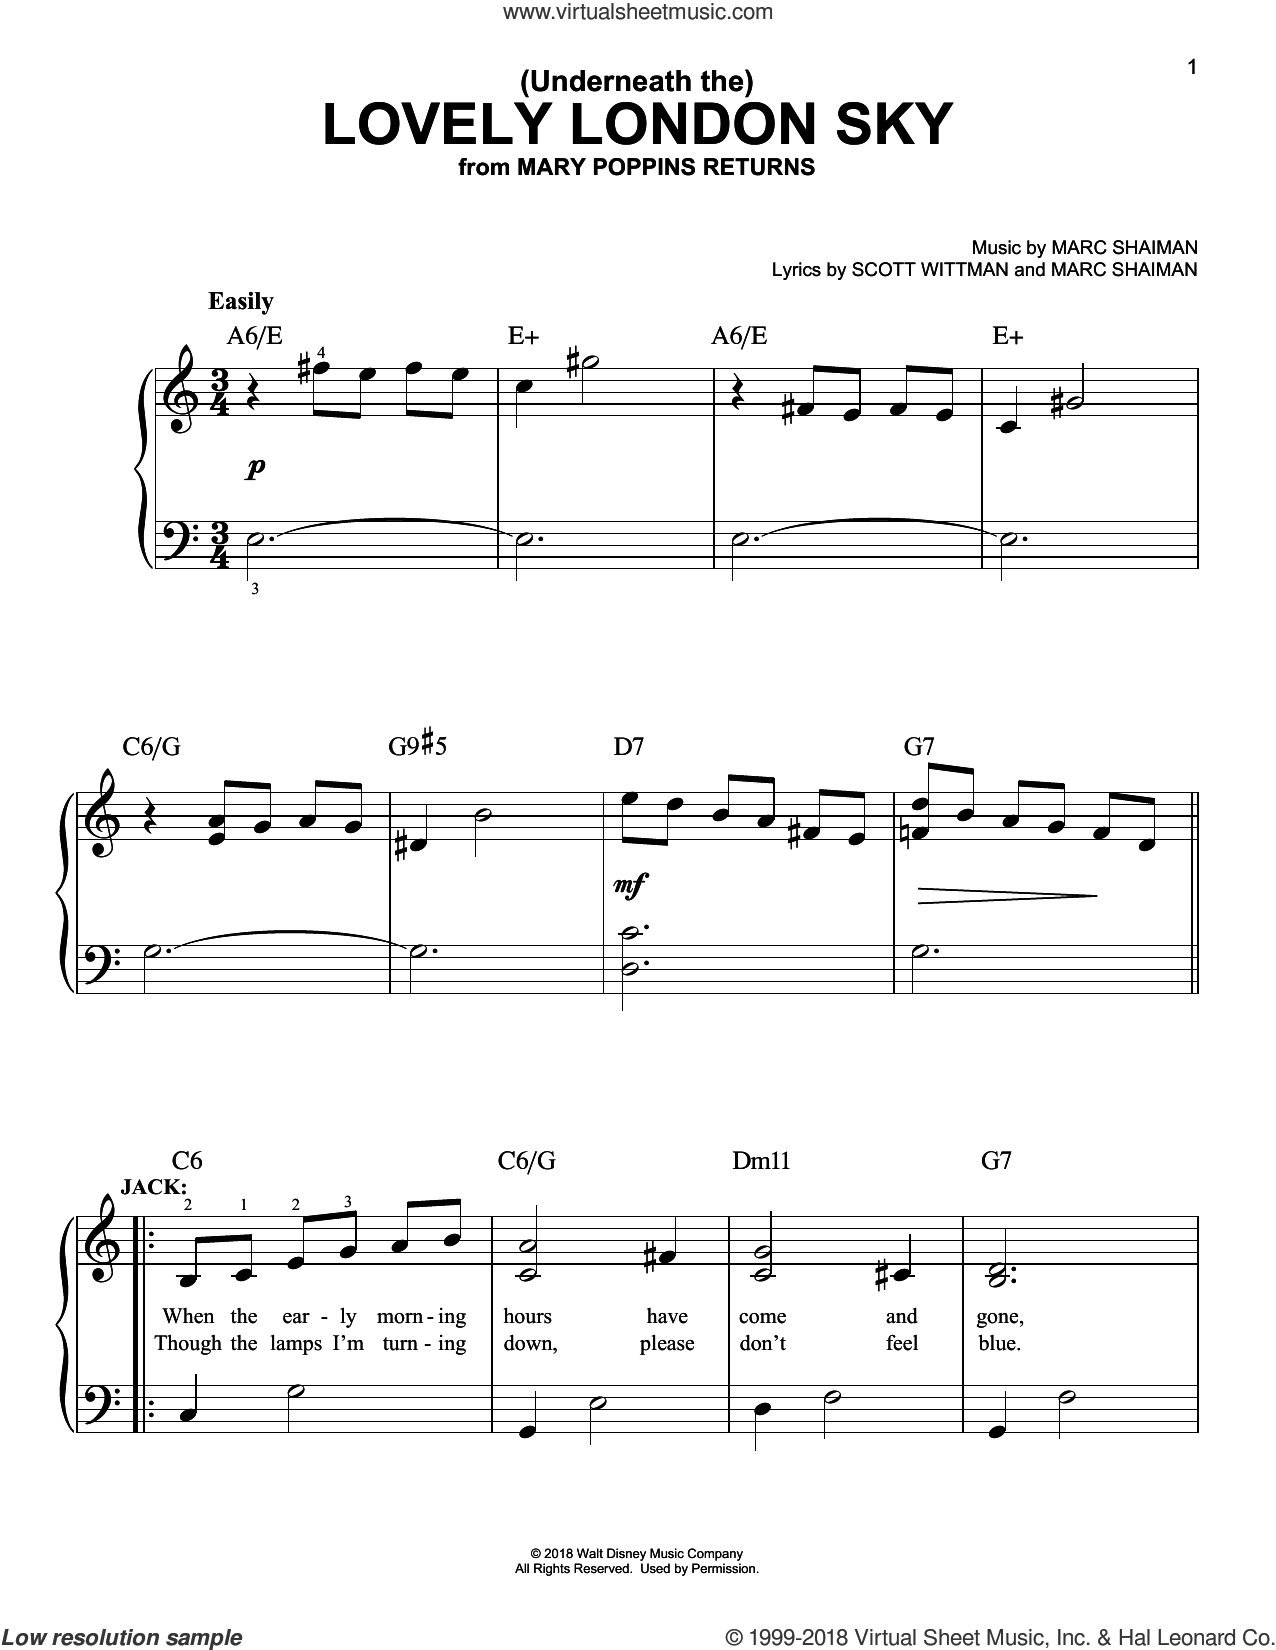 (Underneath The) Lovely London Sky (from Mary Poppins Returns) sheet music for piano solo by Lin-Manuel Miranda, Marc Shaiman and Scott Wittman, easy skill level